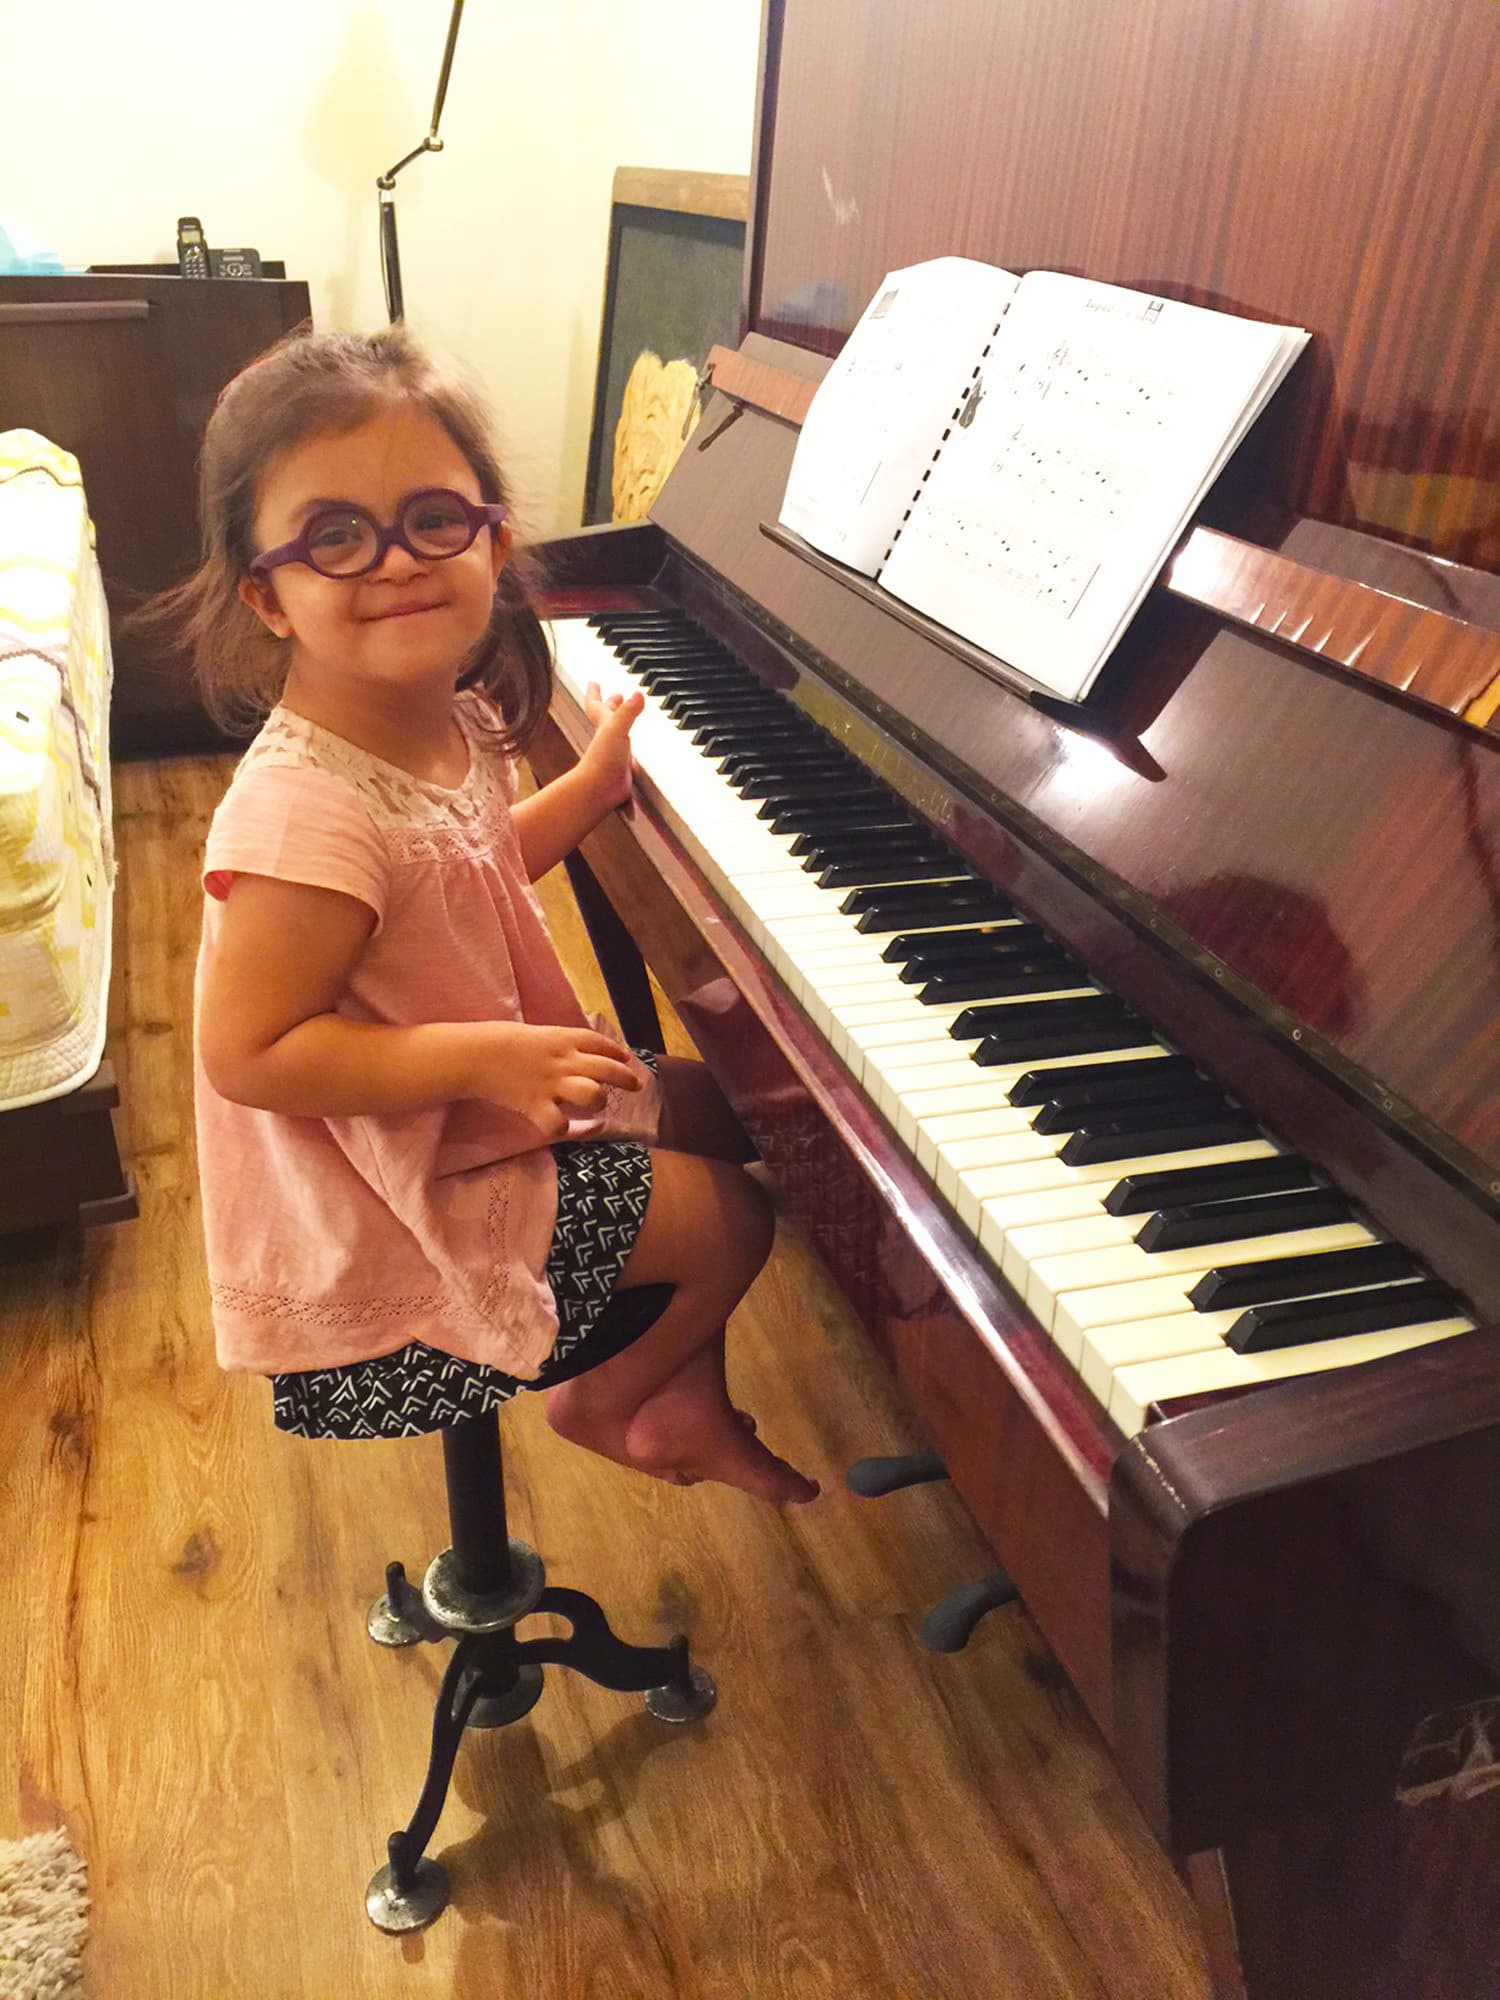 She enjoys so many different activities, one of them being playing the piano.